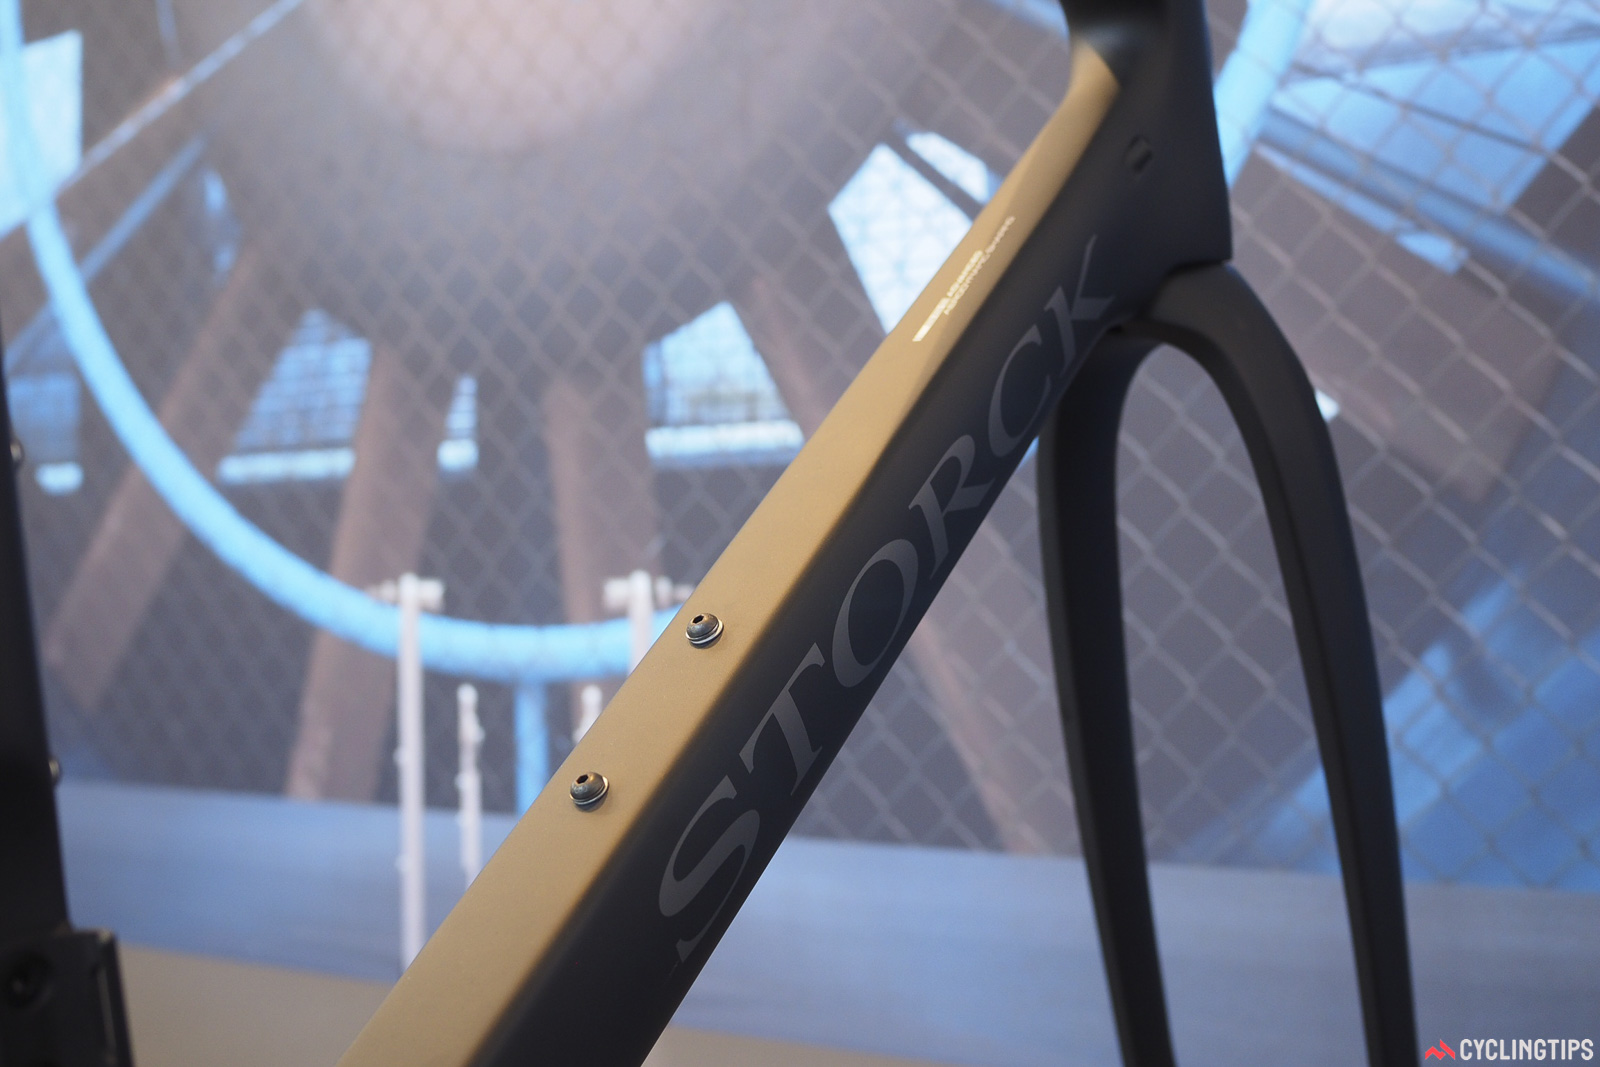 The third generation of Storck's flagship Fascenario frame now sports a more aerodynamically tuned shape with truncated airfoil profiles that supposedly maintain the label's storied stiffness characteristics. Photo: James Huang.